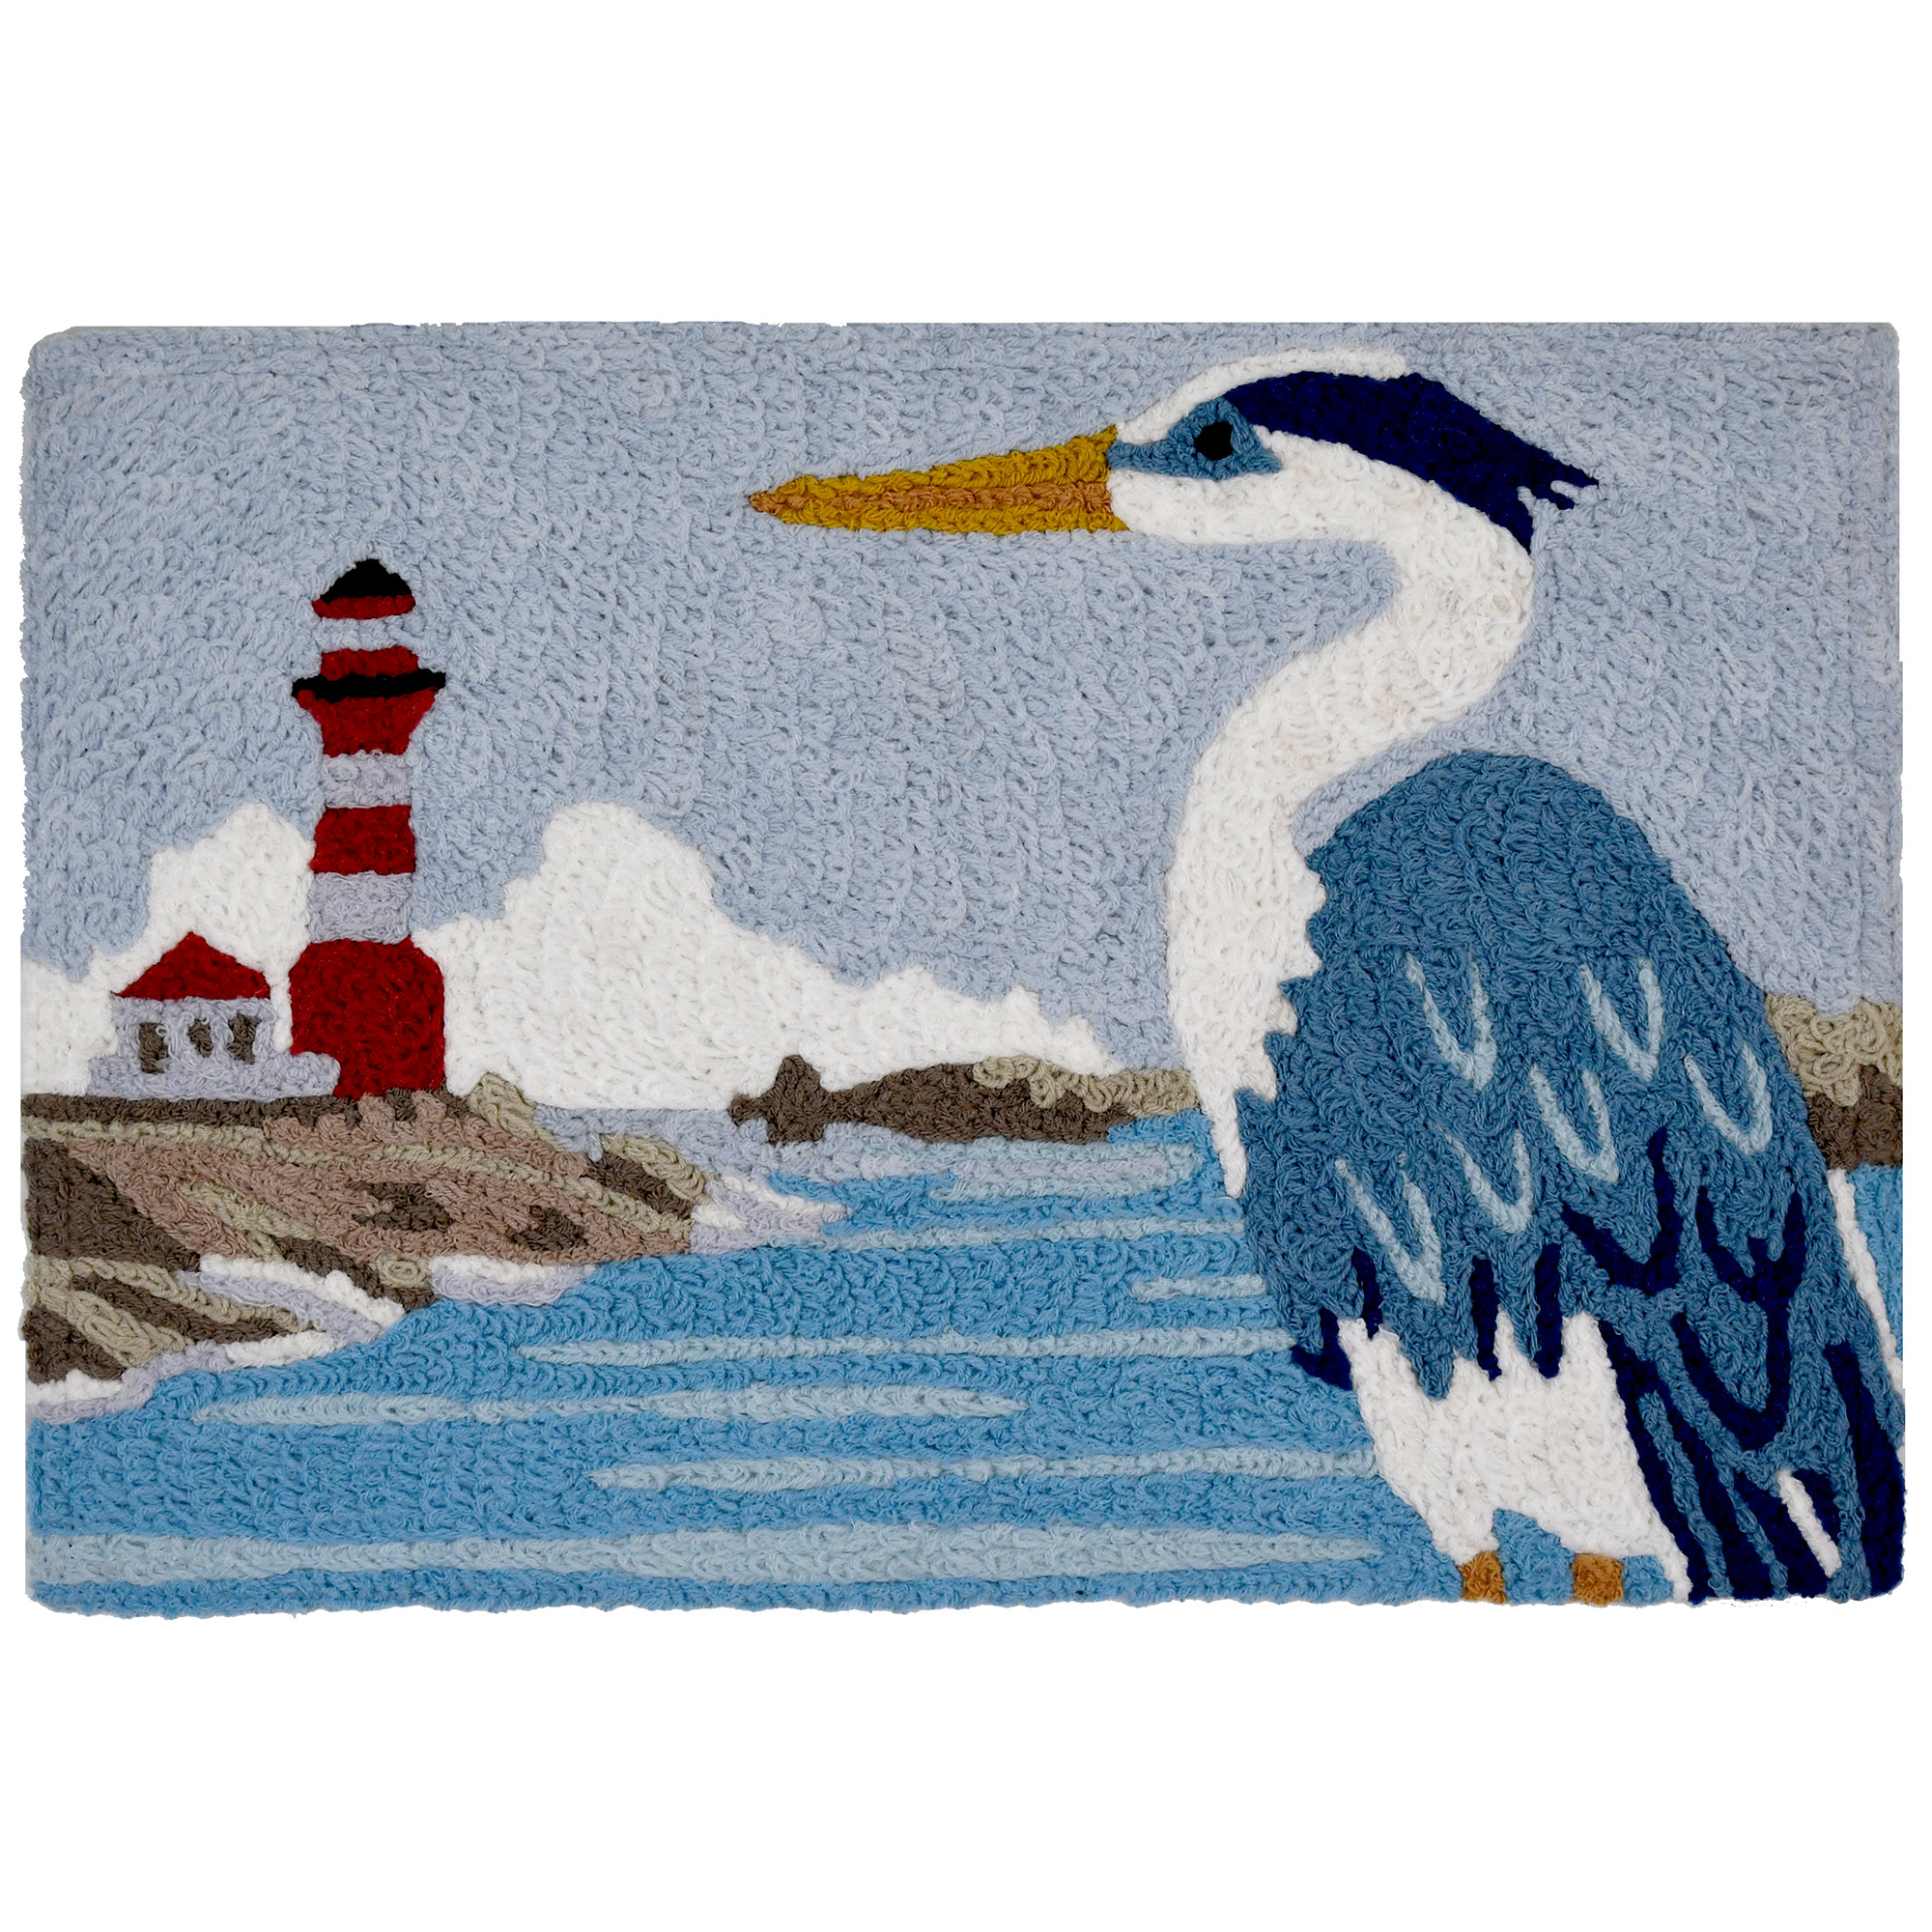 A bold blue and white heron stares off into the distance, watching the lighthouse in its grandeur. This coastal themed Jellybean® accent rug is machine washable with a simple color combination that will work well in a variety of spaces. Crafted of polyester, this throw rug is suitable for indoor and outdoor use.